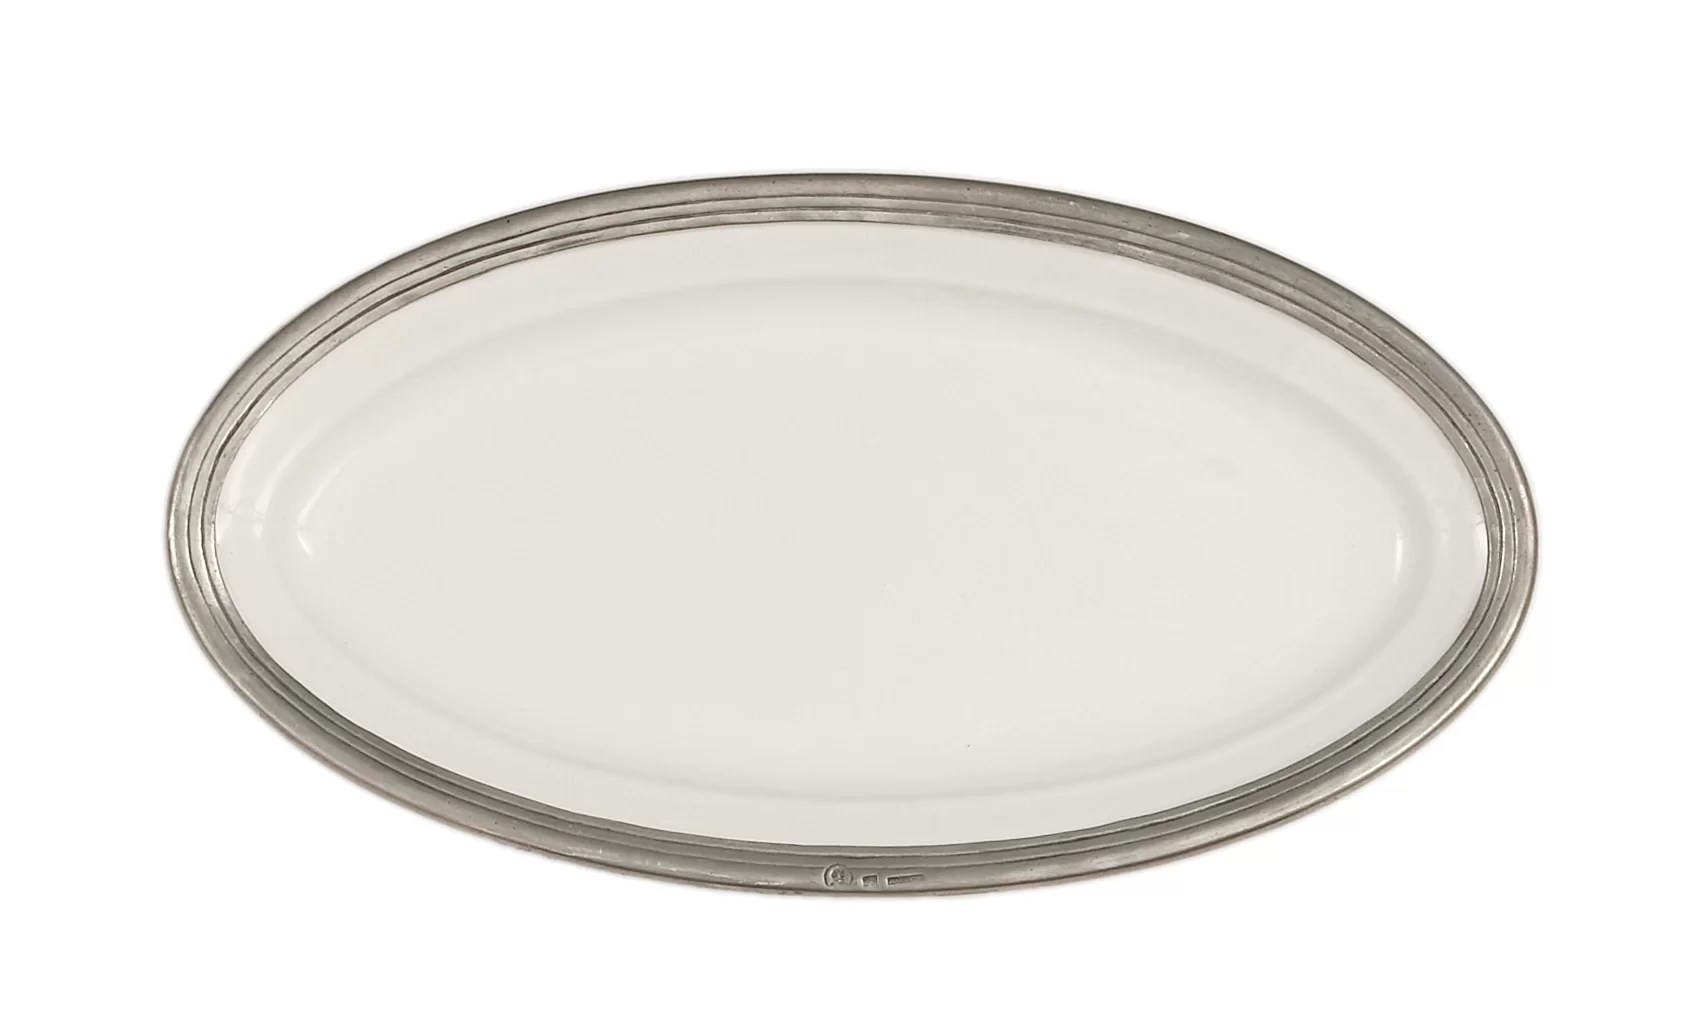 Arte Italica Medici Canisters Tuscan Oval Platter